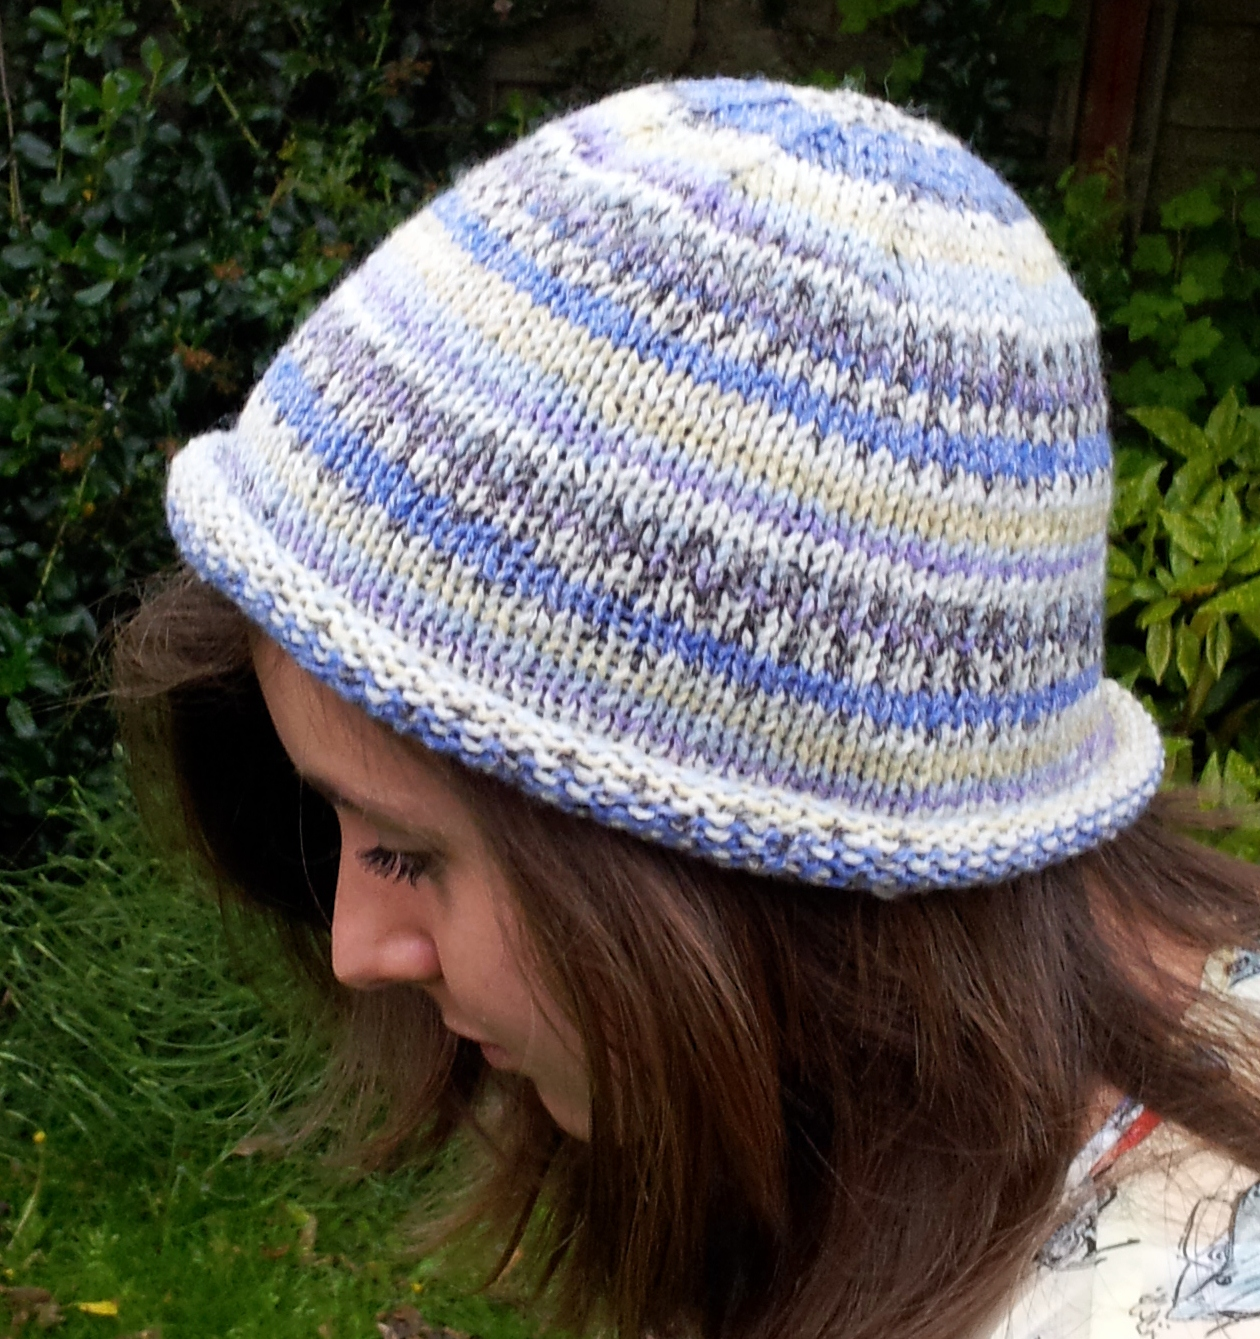 Knitting Patterns Free Beanie Hats : Knitted Rolled Brim Beanie Hat   Free beginners pattern ...